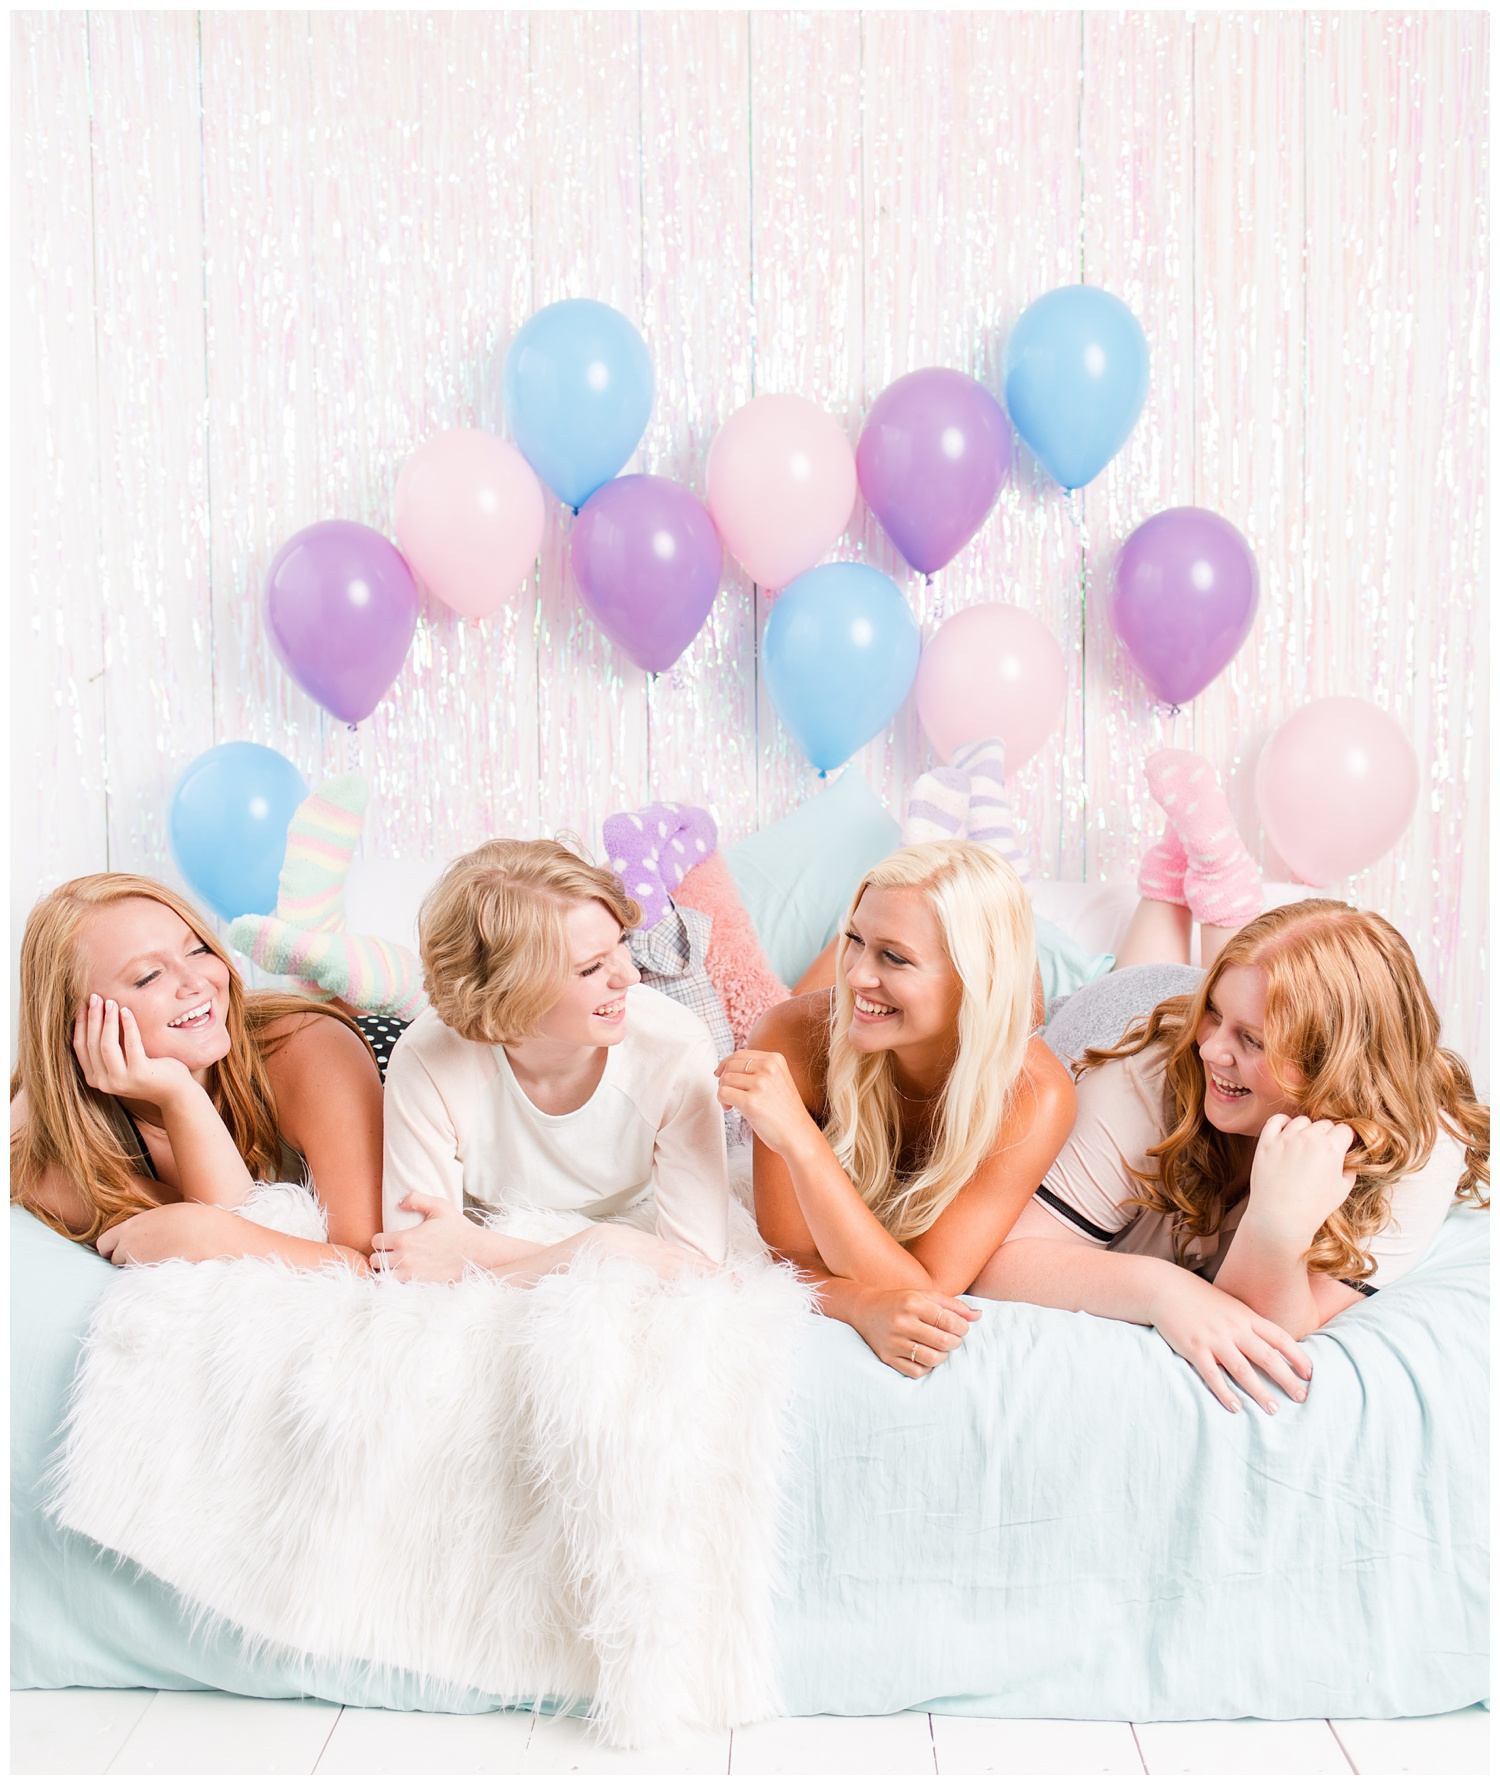 Senior girls laying on a bed and laughing during a senior sleepover-styled photoshoot with iridescent streamers and balloons. | CB Studio